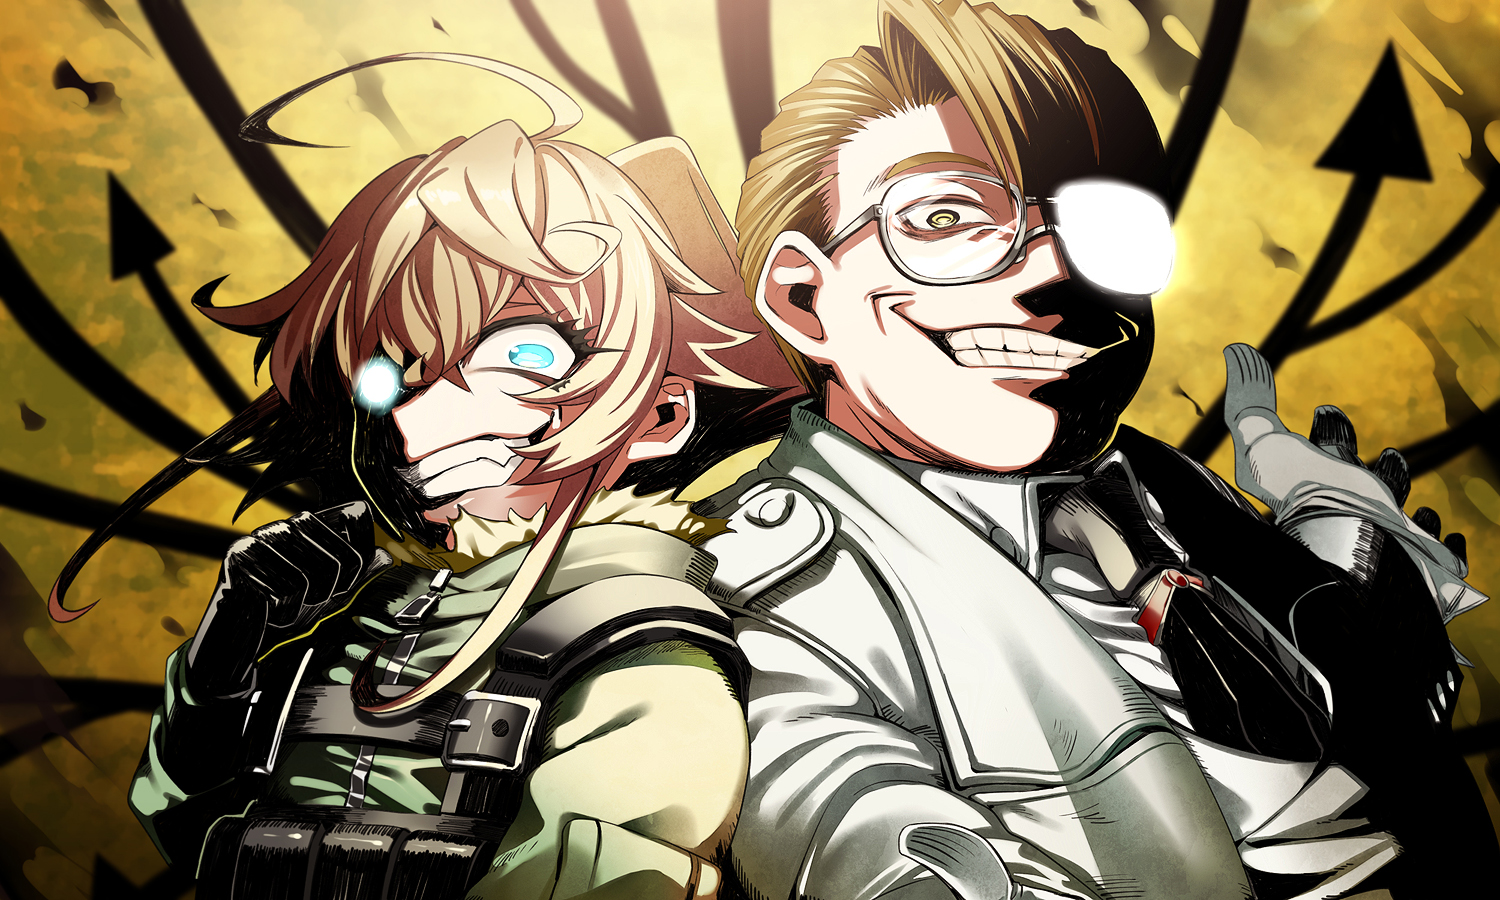 Youjo Senki Fic Idea, Rec, and Discussion | SpaceBattles Forums